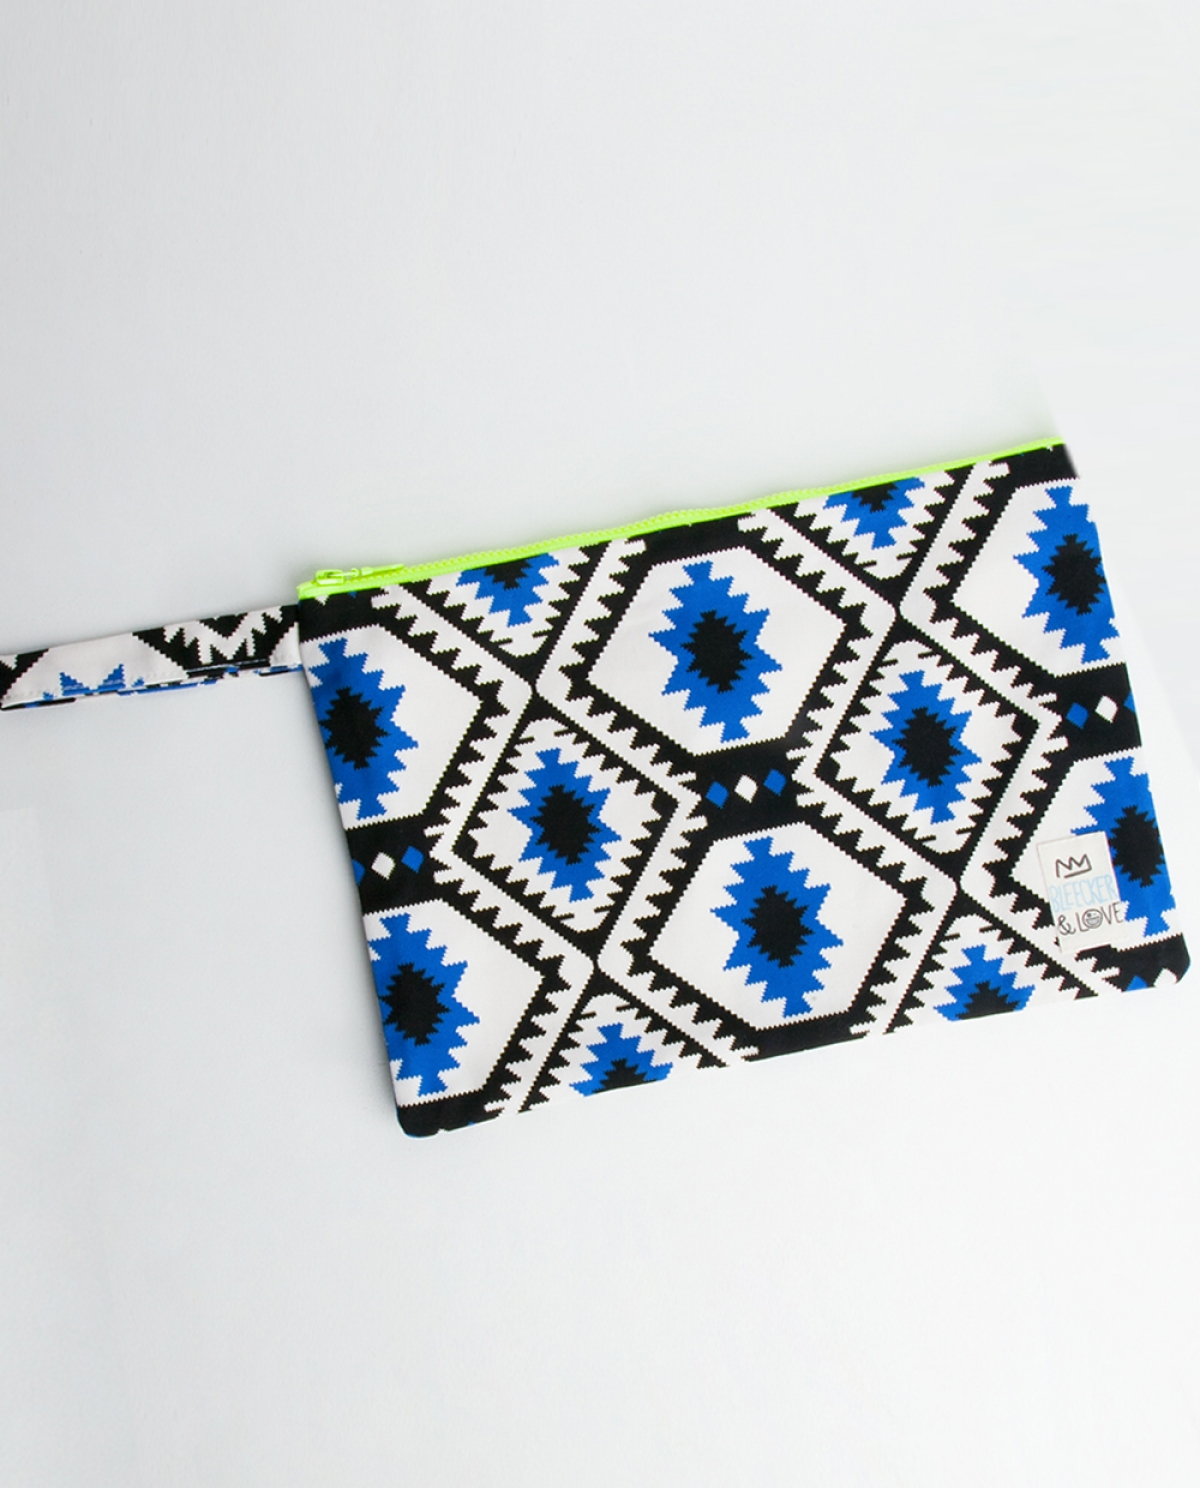 Costa Calma Small Clutch